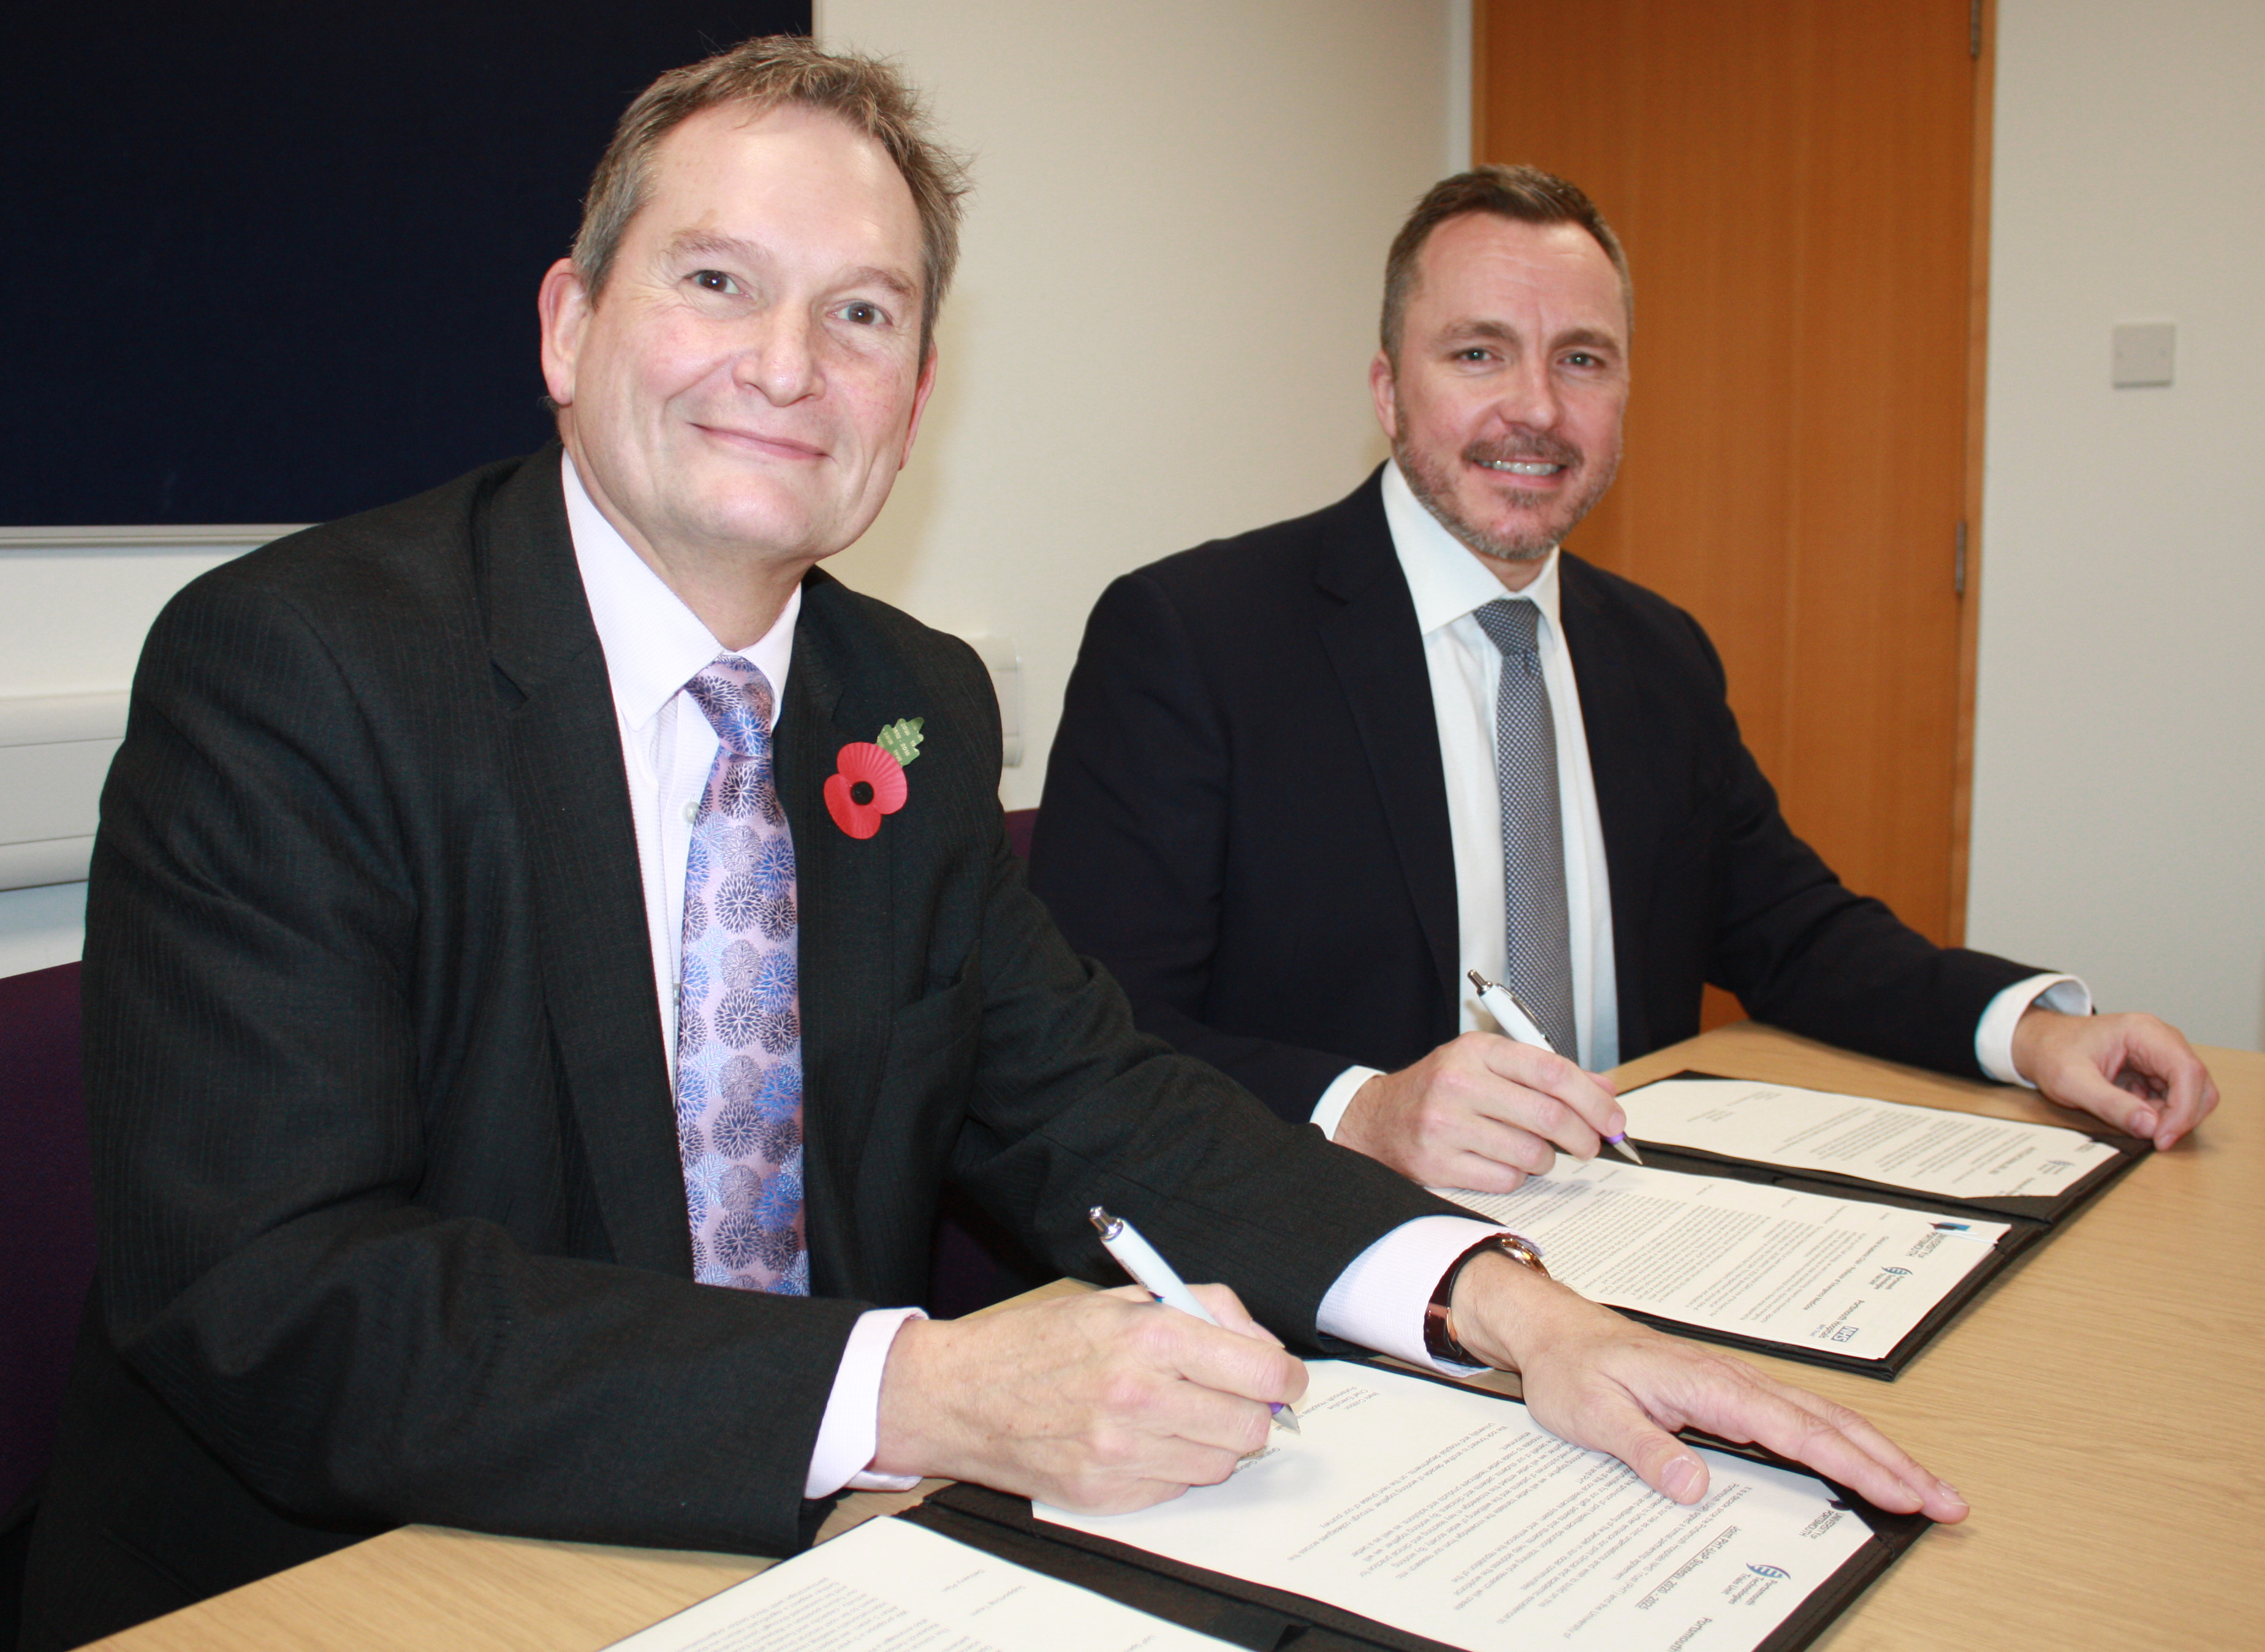 Portsmouth Hospitals NHS Trust and University of Portsmouth strengthen relationship by signing strategic partnership